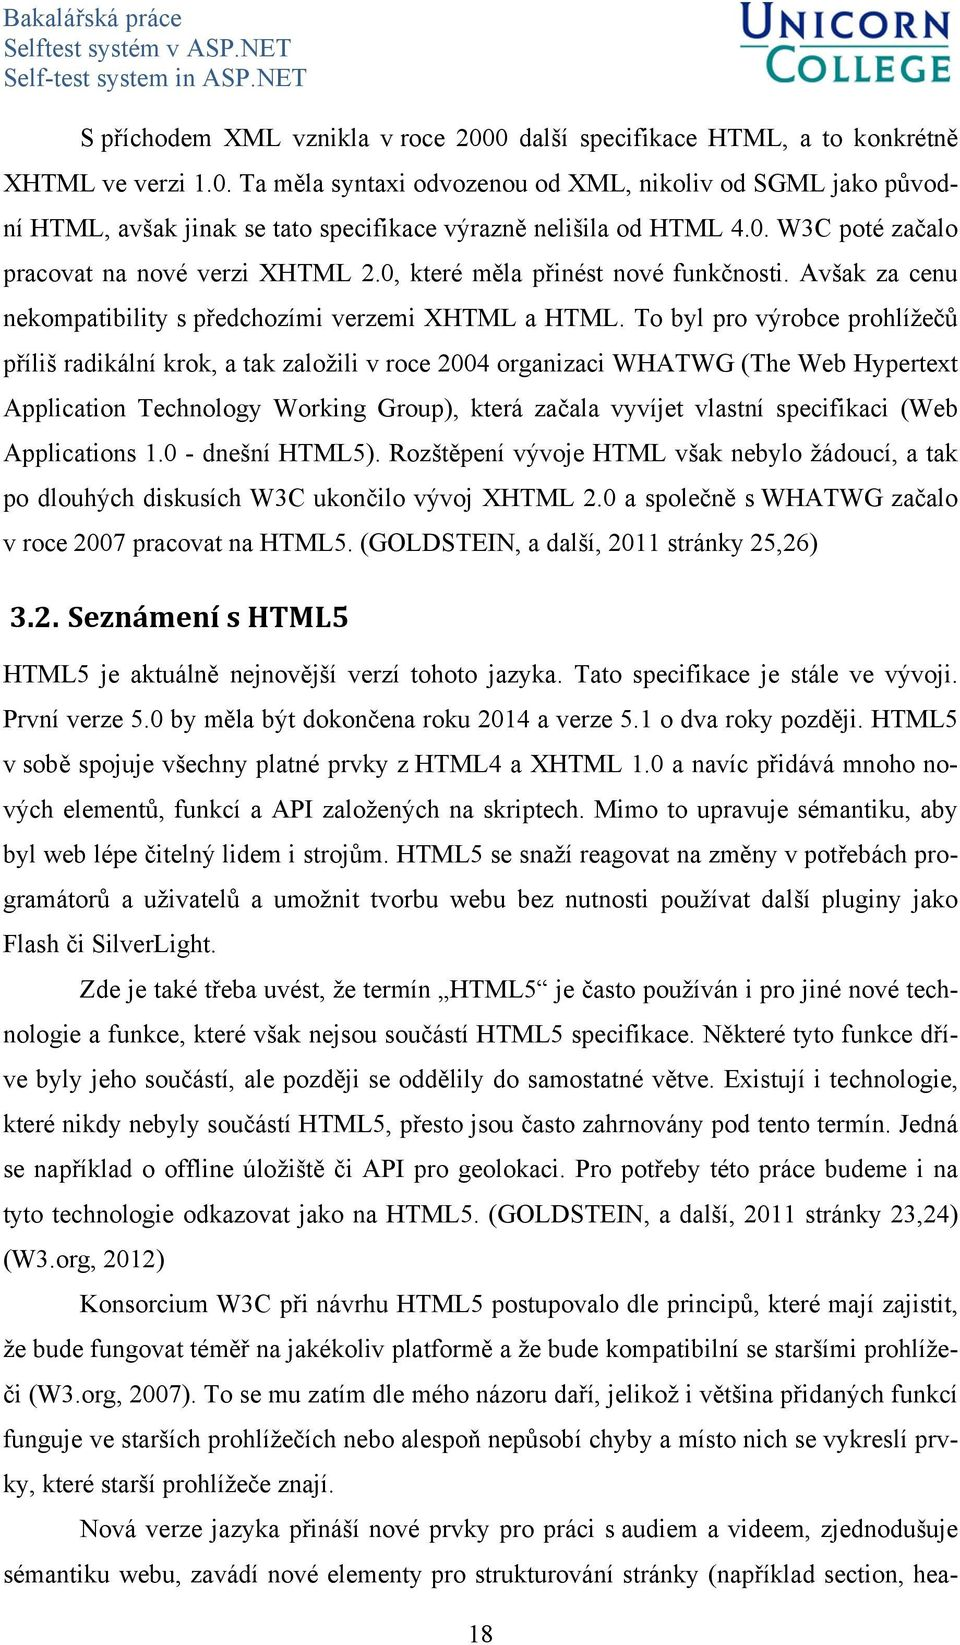 To byl pro výrobce prohlížečů příliš radikální krok, a tak založili v roce 2004 organizaci WHATWG (The Web Hypertext Application Technology Working Group), která začala vyvíjet vlastní specifikaci